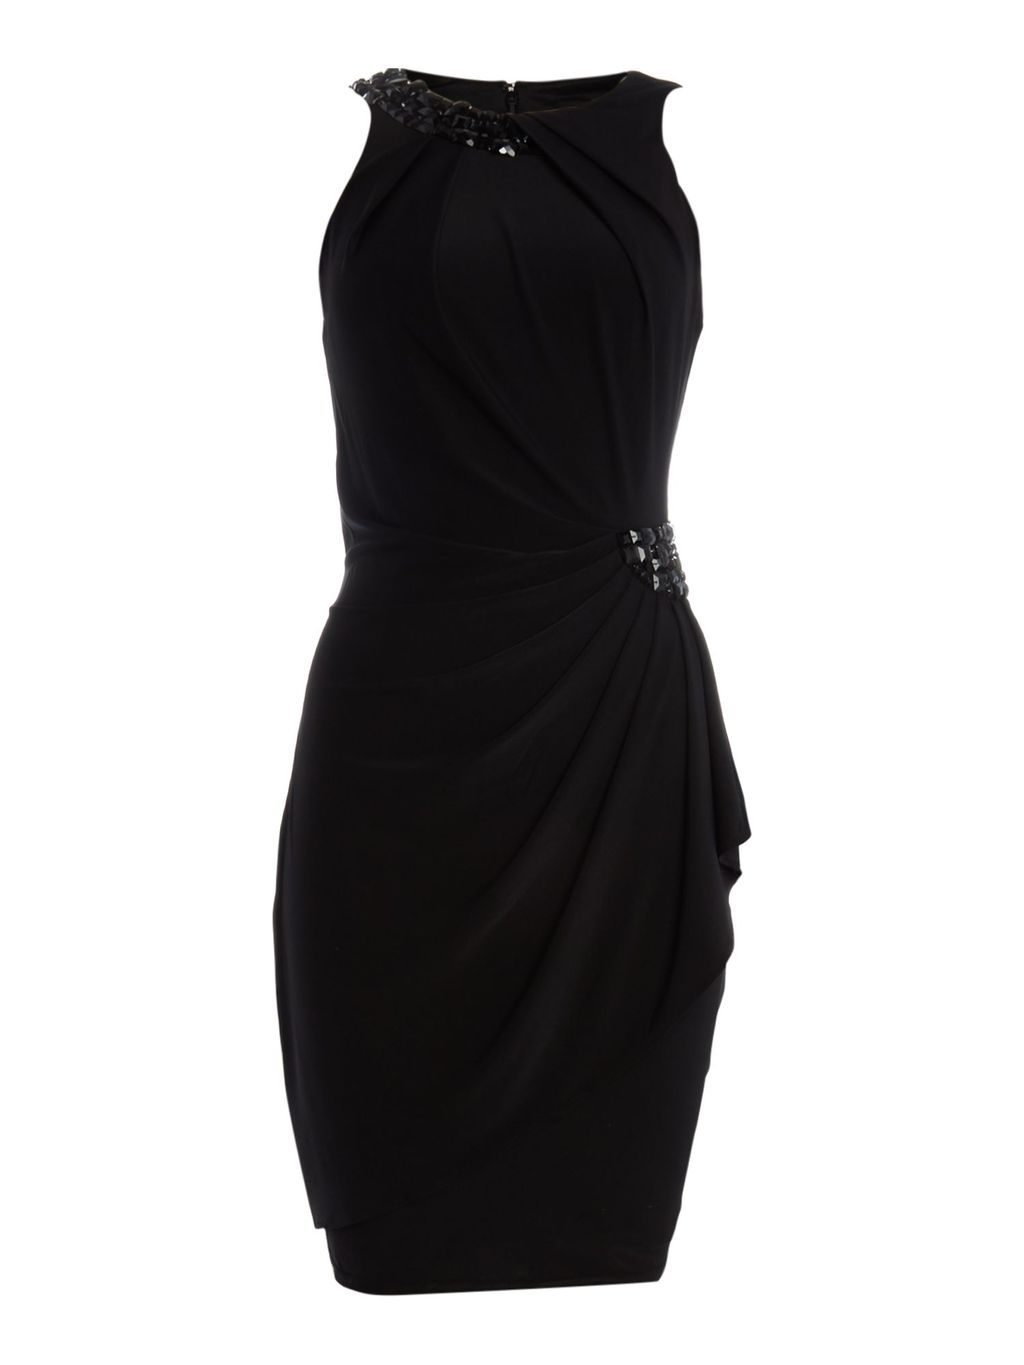 Jersey Dress With Beaded Halter Neck, Black - style: shift; neckline: round neck; fit: tailored/fitted; pattern: plain; sleeve style: sleeveless; predominant colour: black; occasions: evening; length: just above the knee; fibres: polyester/polyamide - stretch; sleeve length: sleeveless; pattern type: fabric; texture group: other - light to midweight; season: a/w 2015